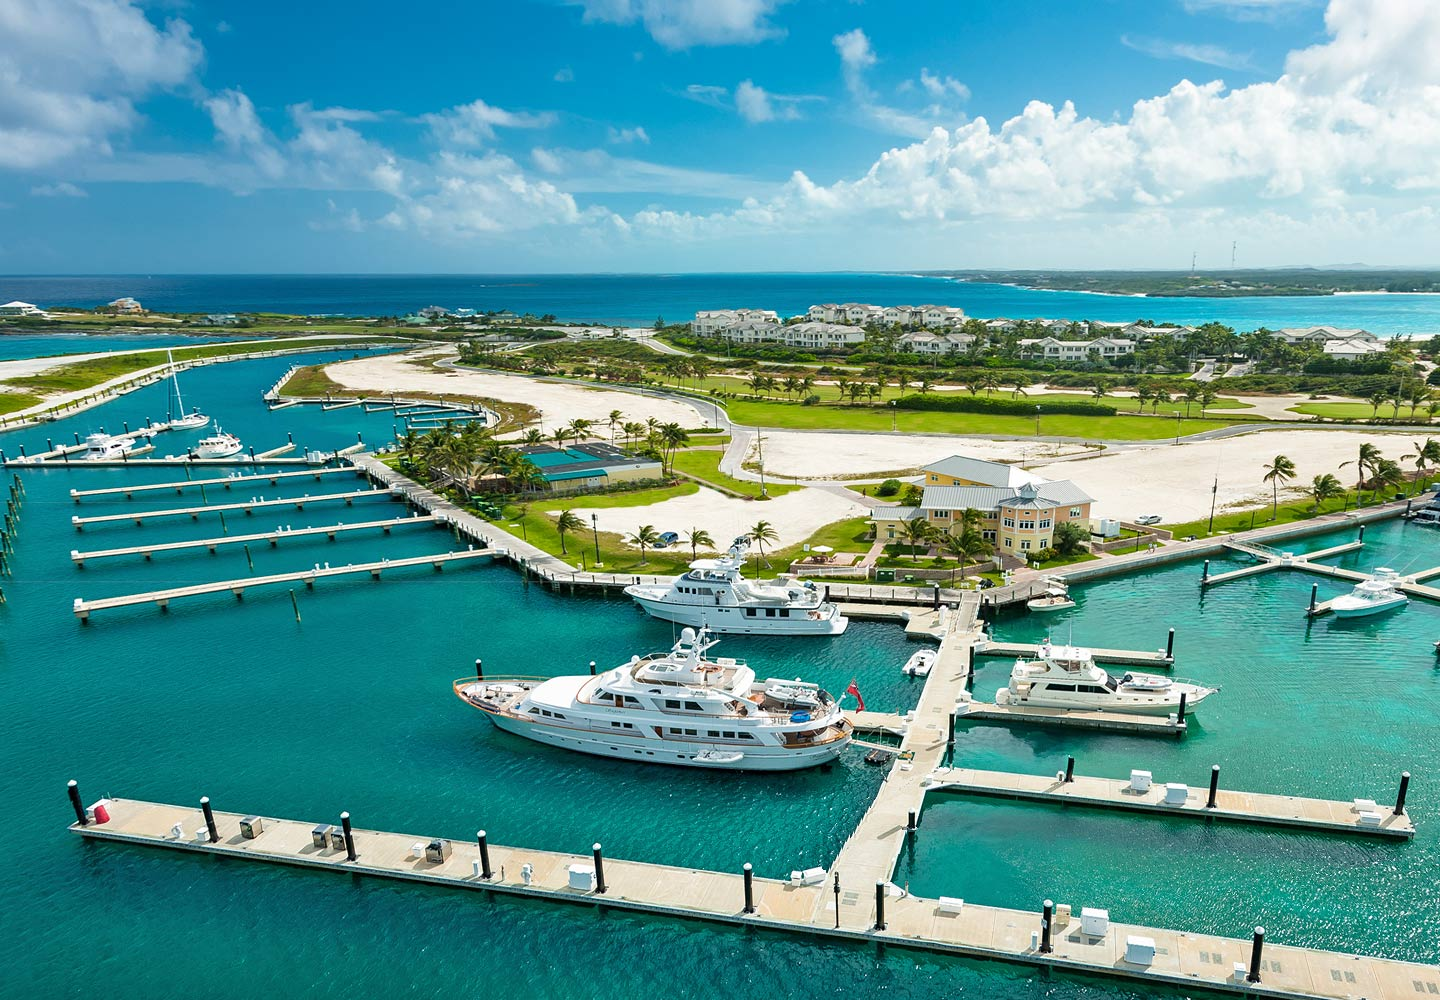 Exuma All Inclusive - Sandals Emerald Bay Marina